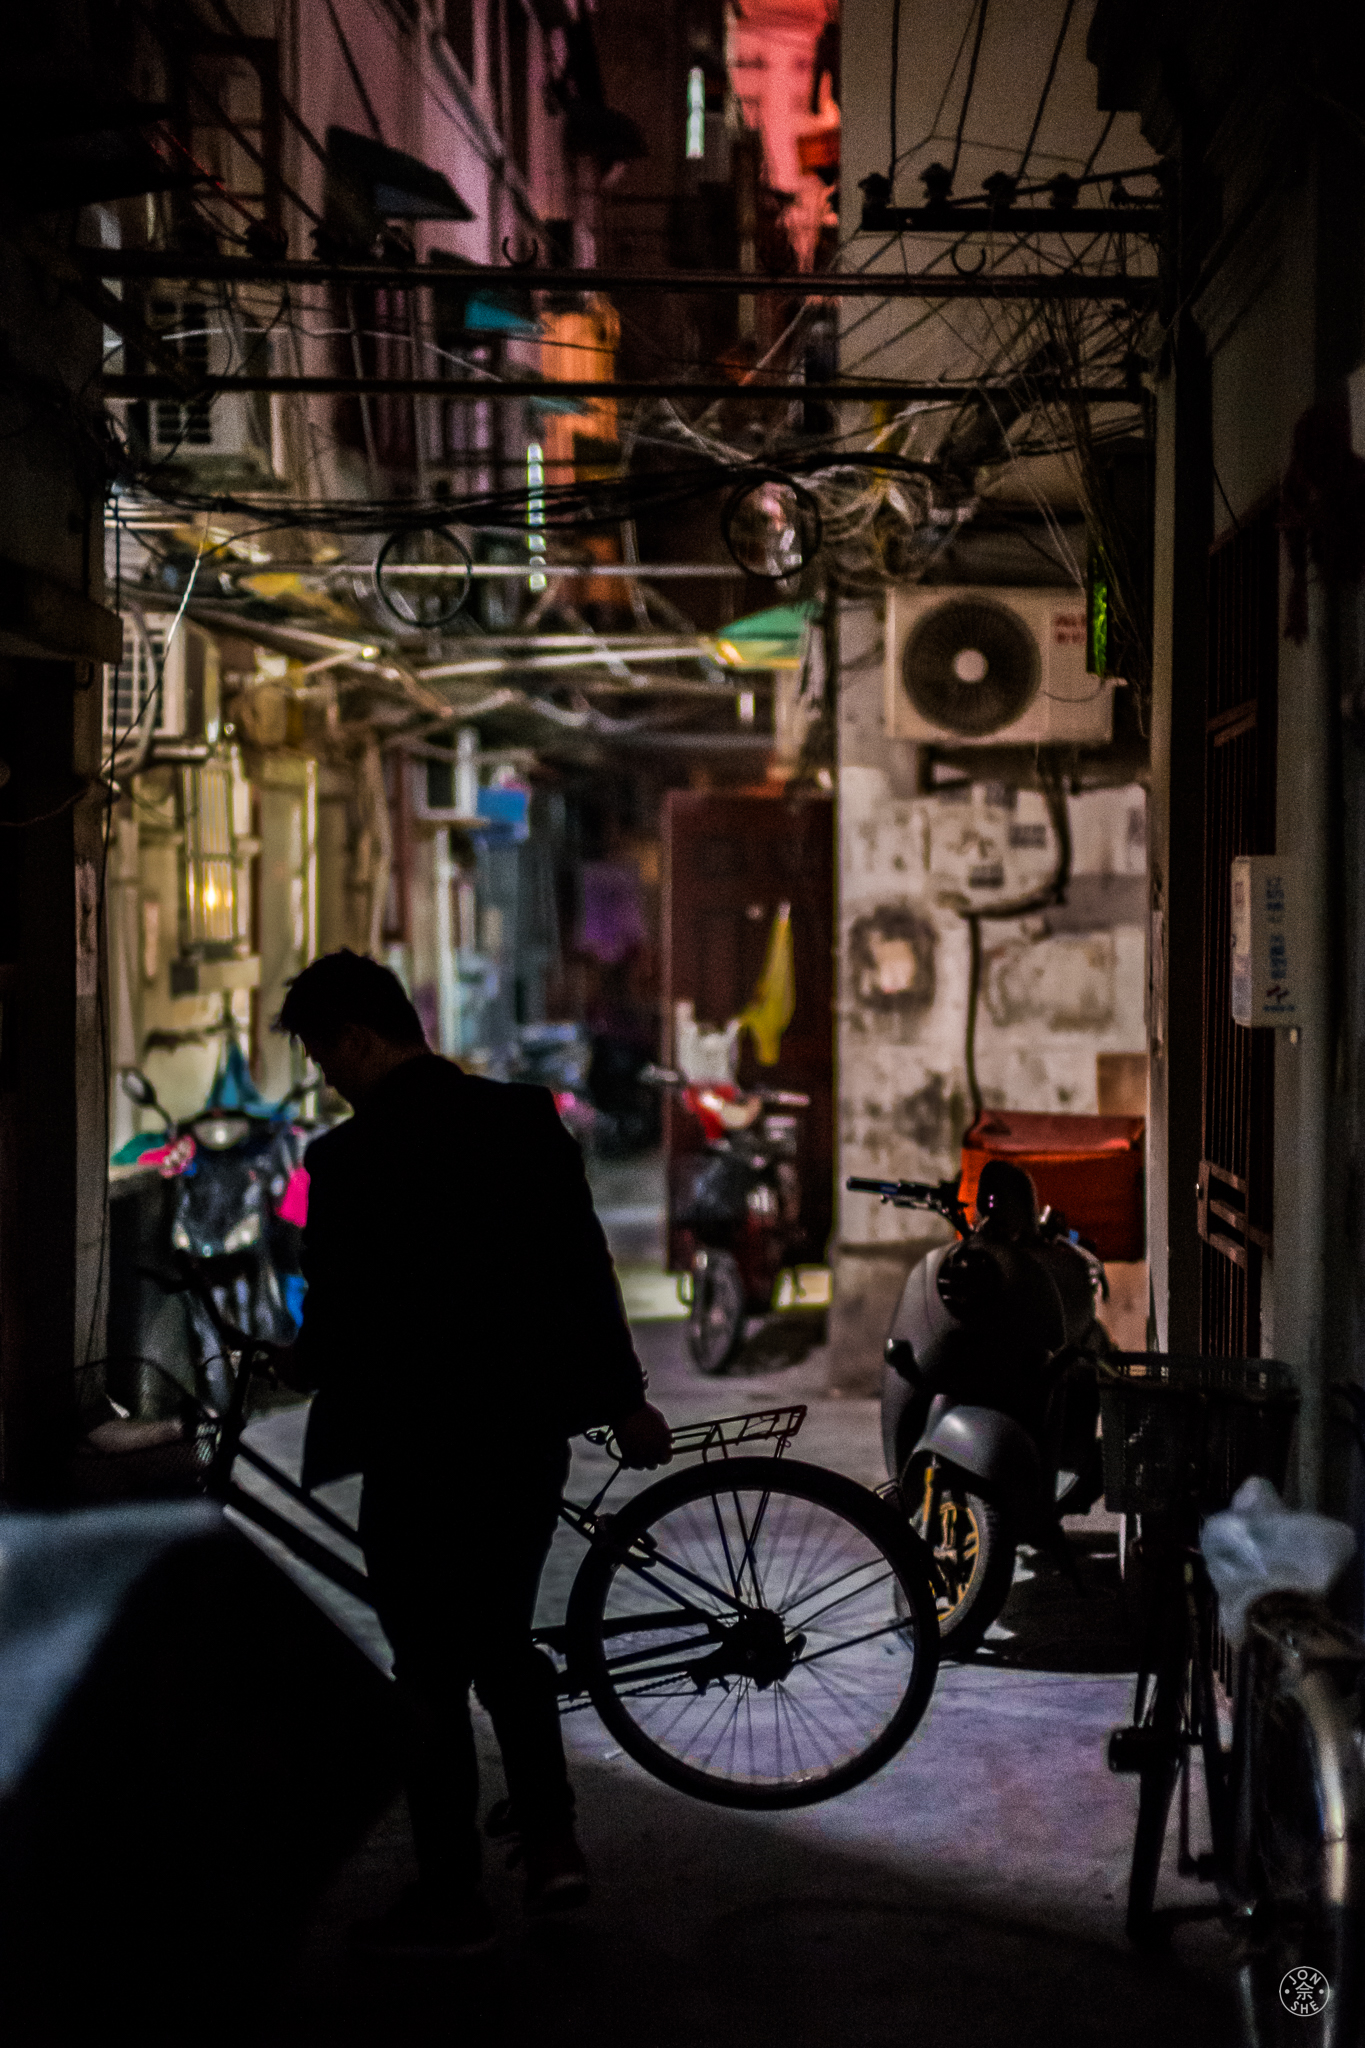 """""""Arriving Home"""".  A young man gets back home late at night on his bicycle, in a back alley in Shanghai. Hundreds of thousands of the city's residents still live in congested and relatively undeveloped back alley communities like this one, often just around the corner from a modern road or skyscraper. Shanghai, China. May, 2016. © Jon She.Leica SL (Typ 601), Leica Noctilux-M 50mm ASPH."""